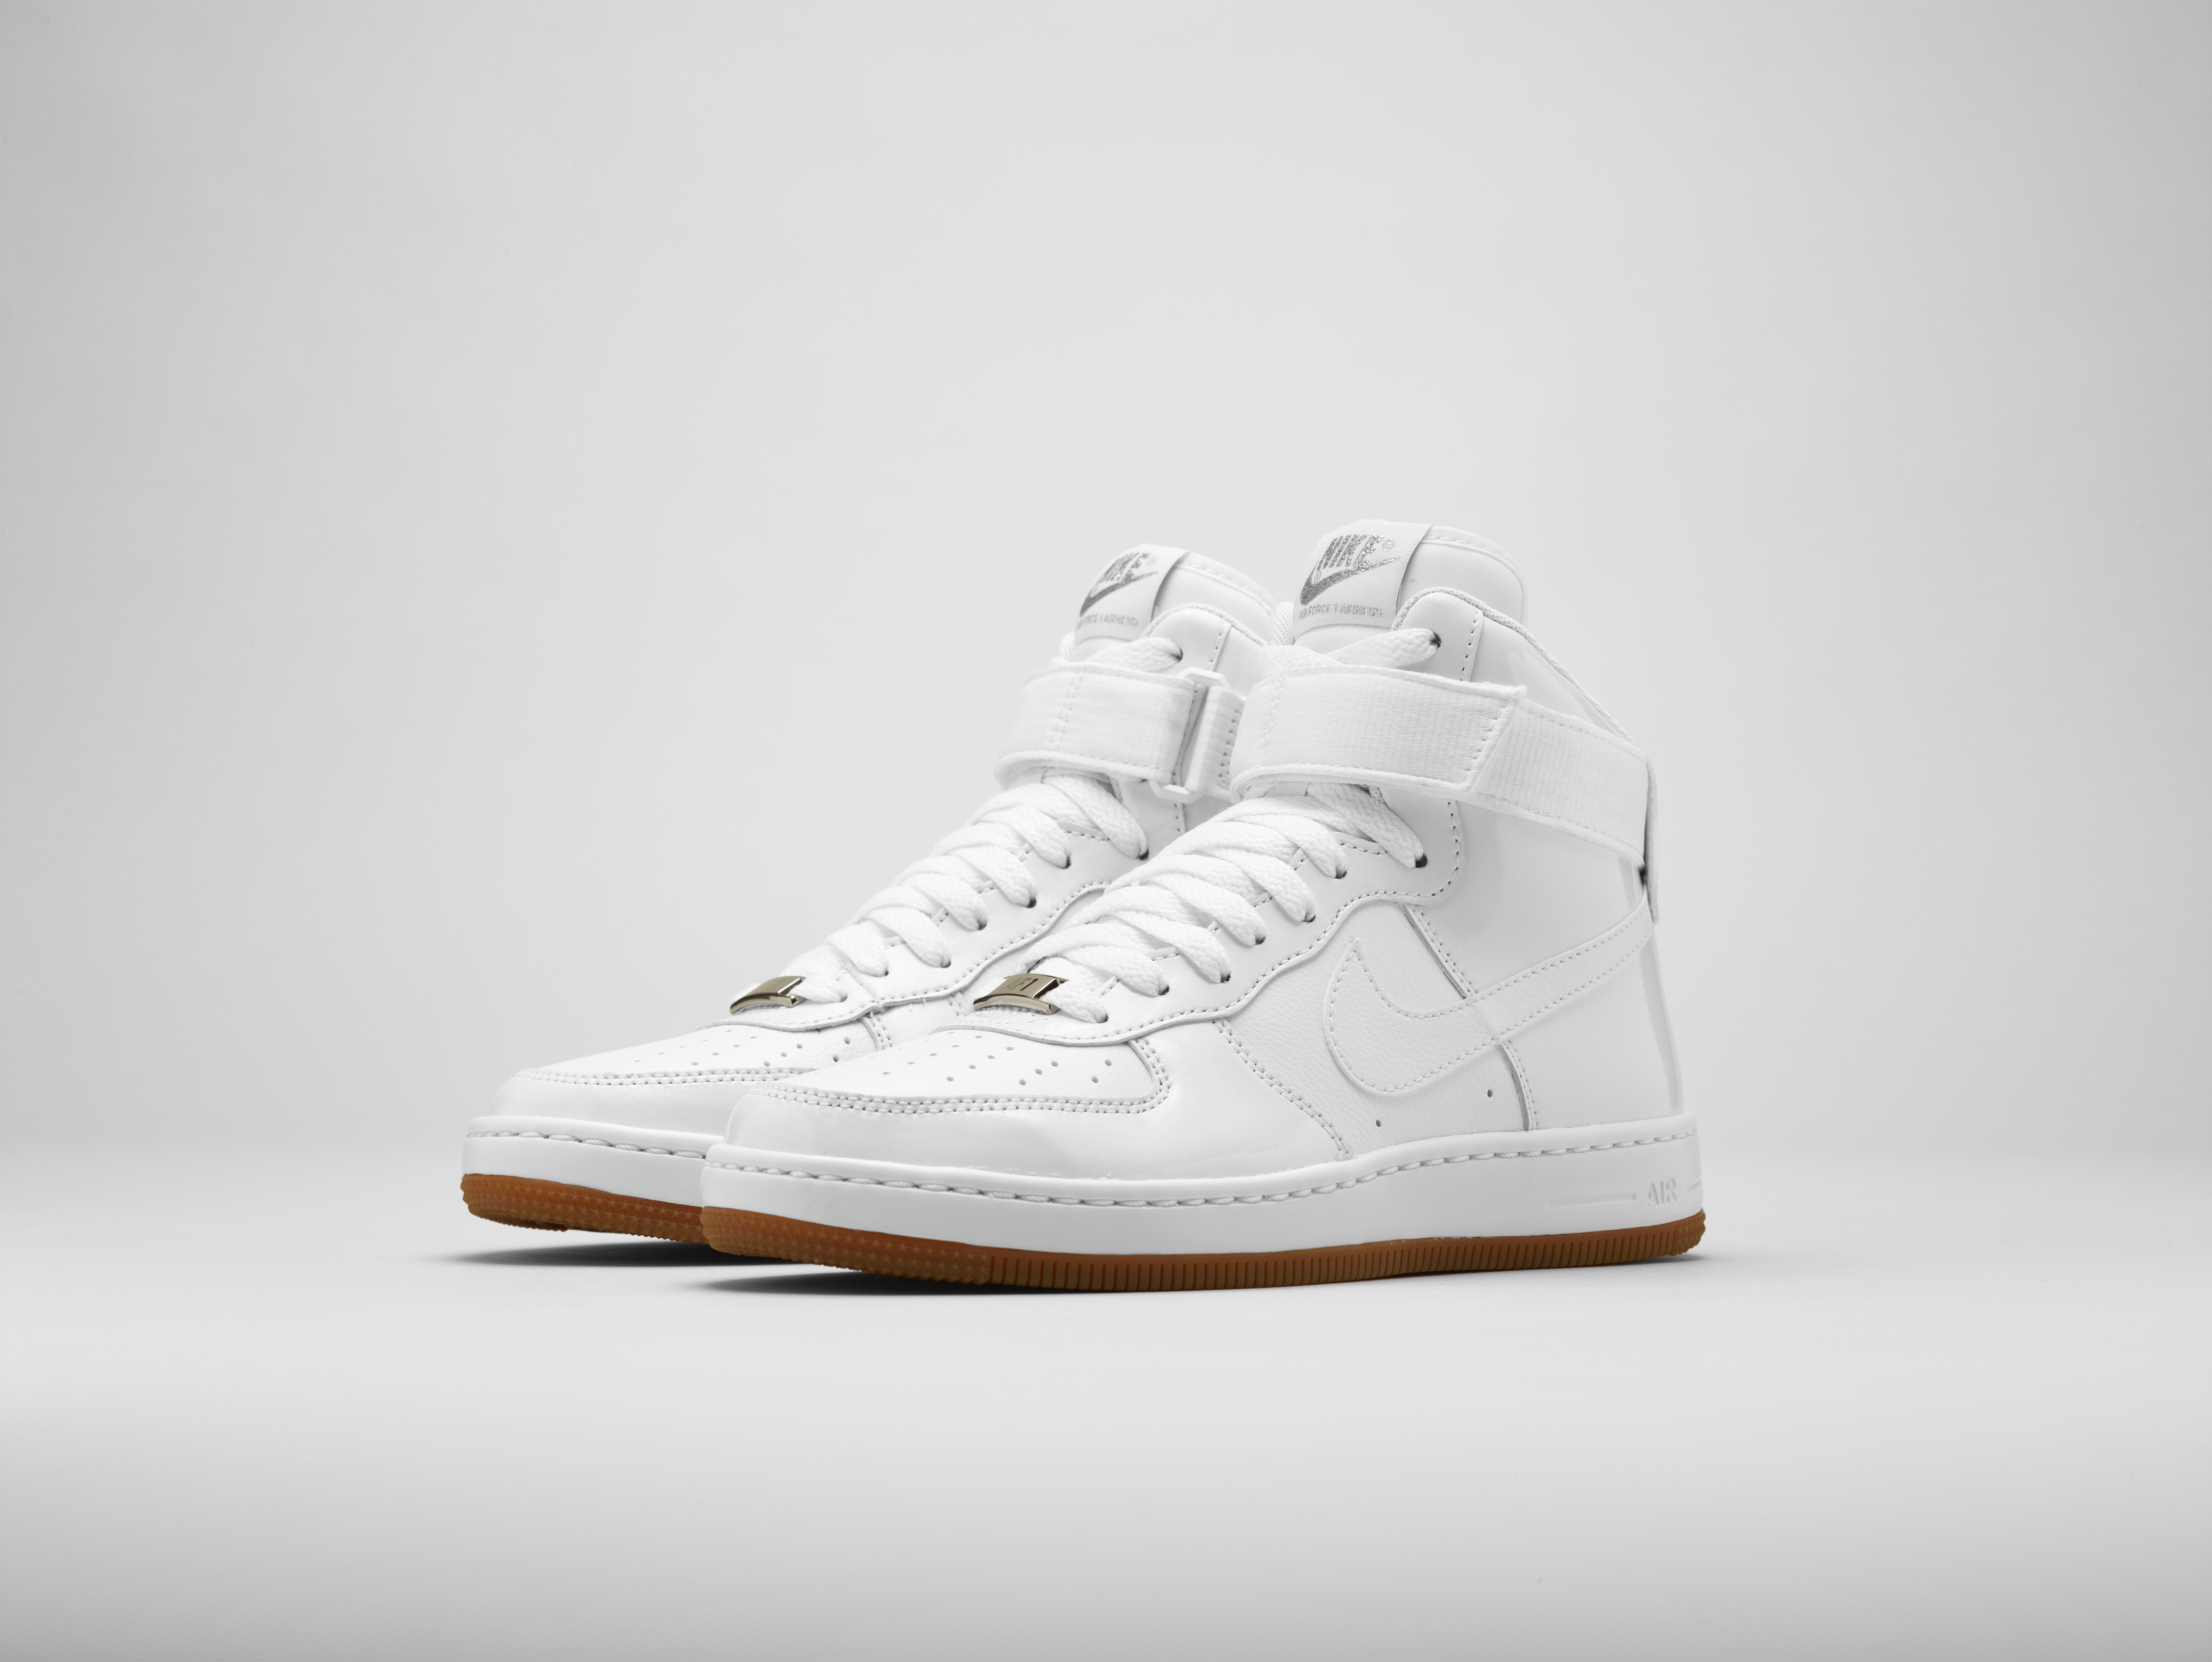 differently 32d83 ddca6 nike air force 1 ultra leather high top sneakers